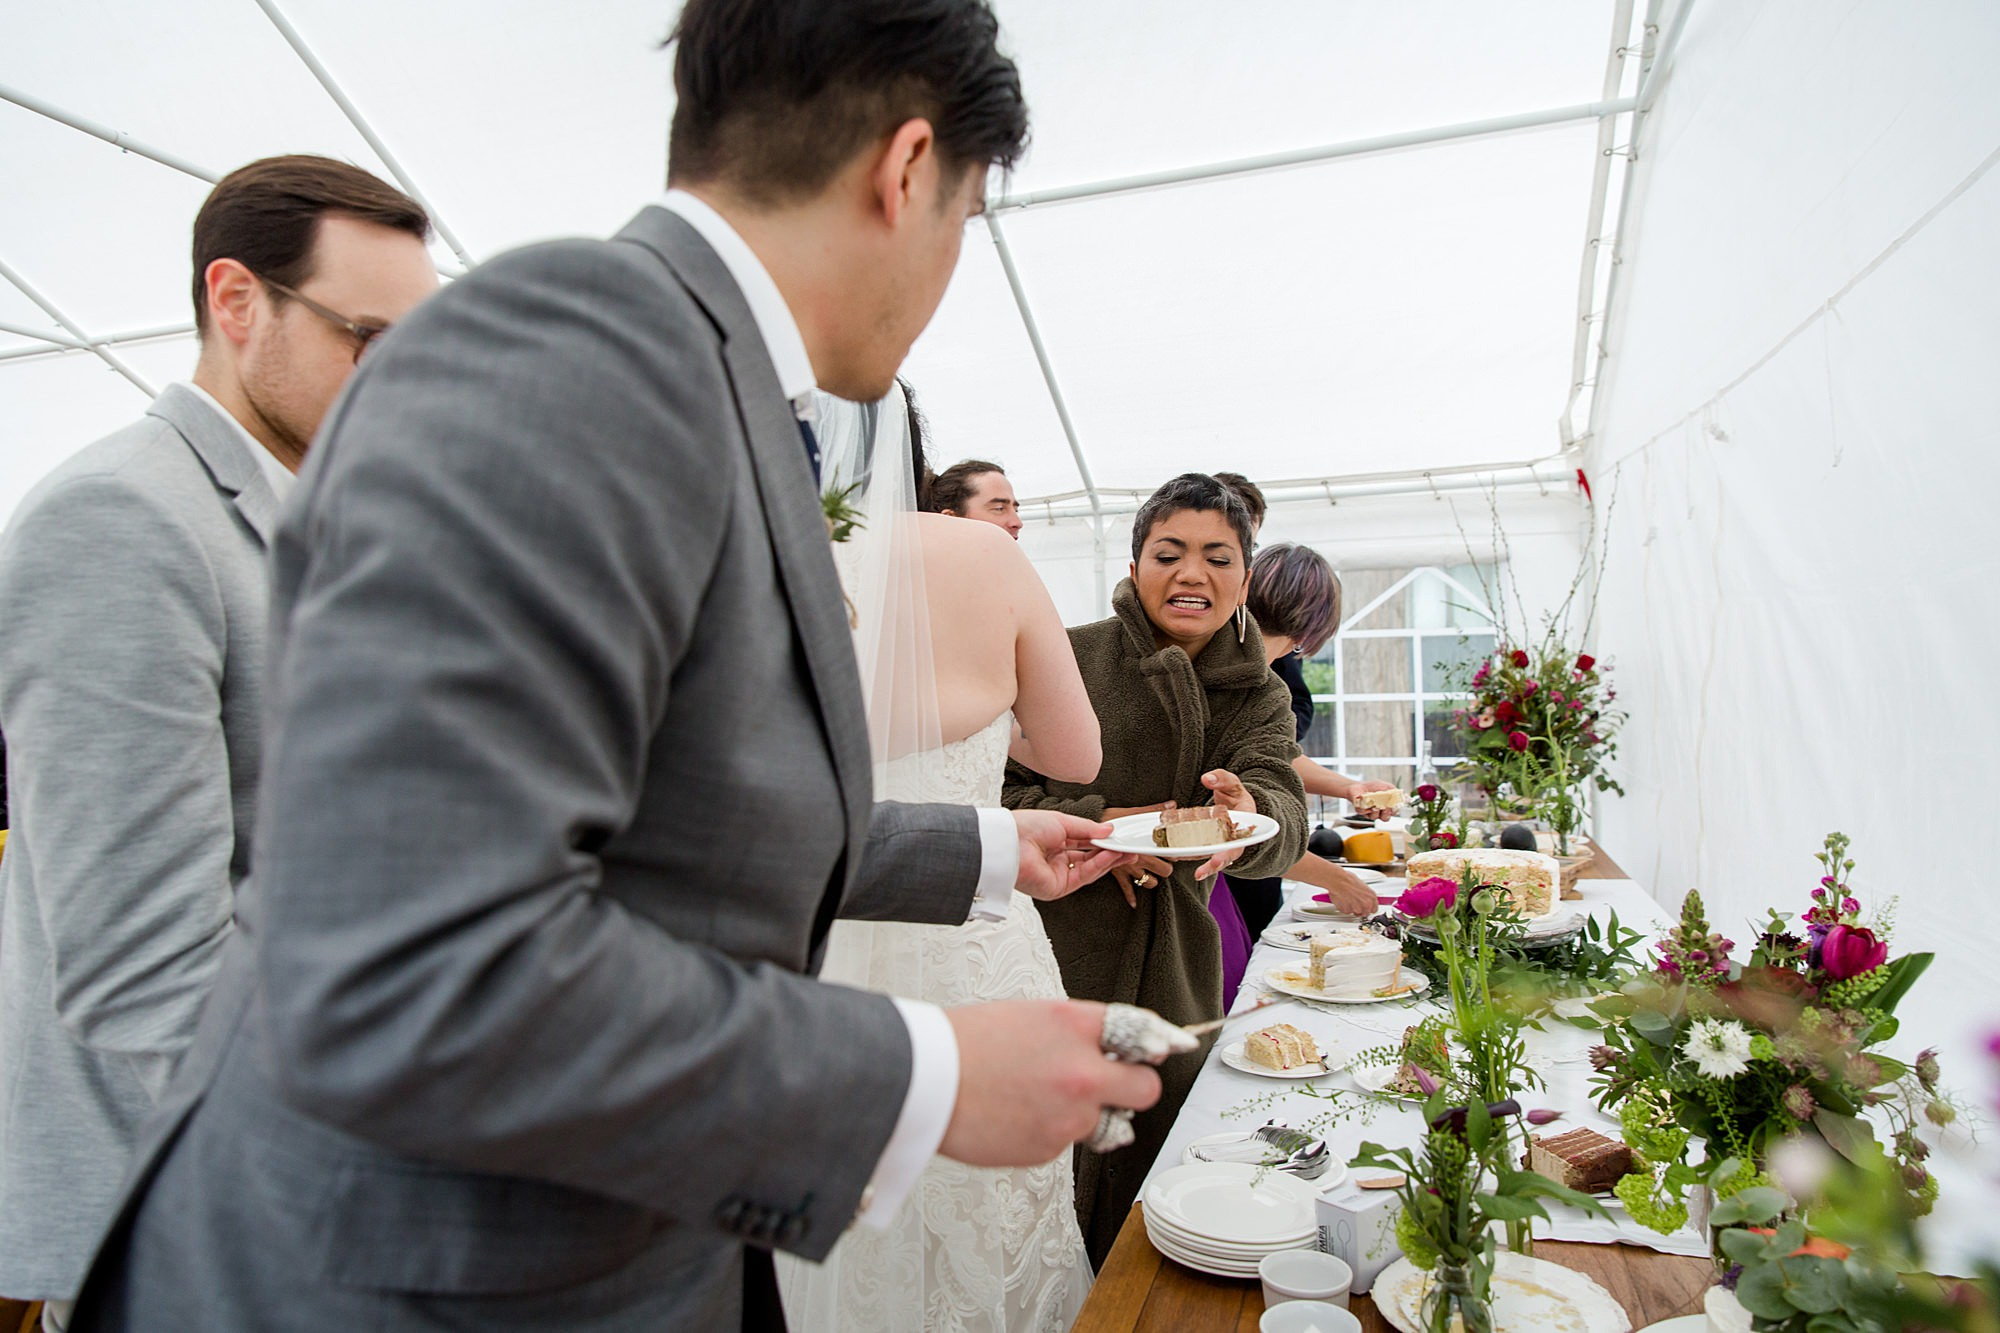 Brunel museum wedding groom cuts cake and serves to guests